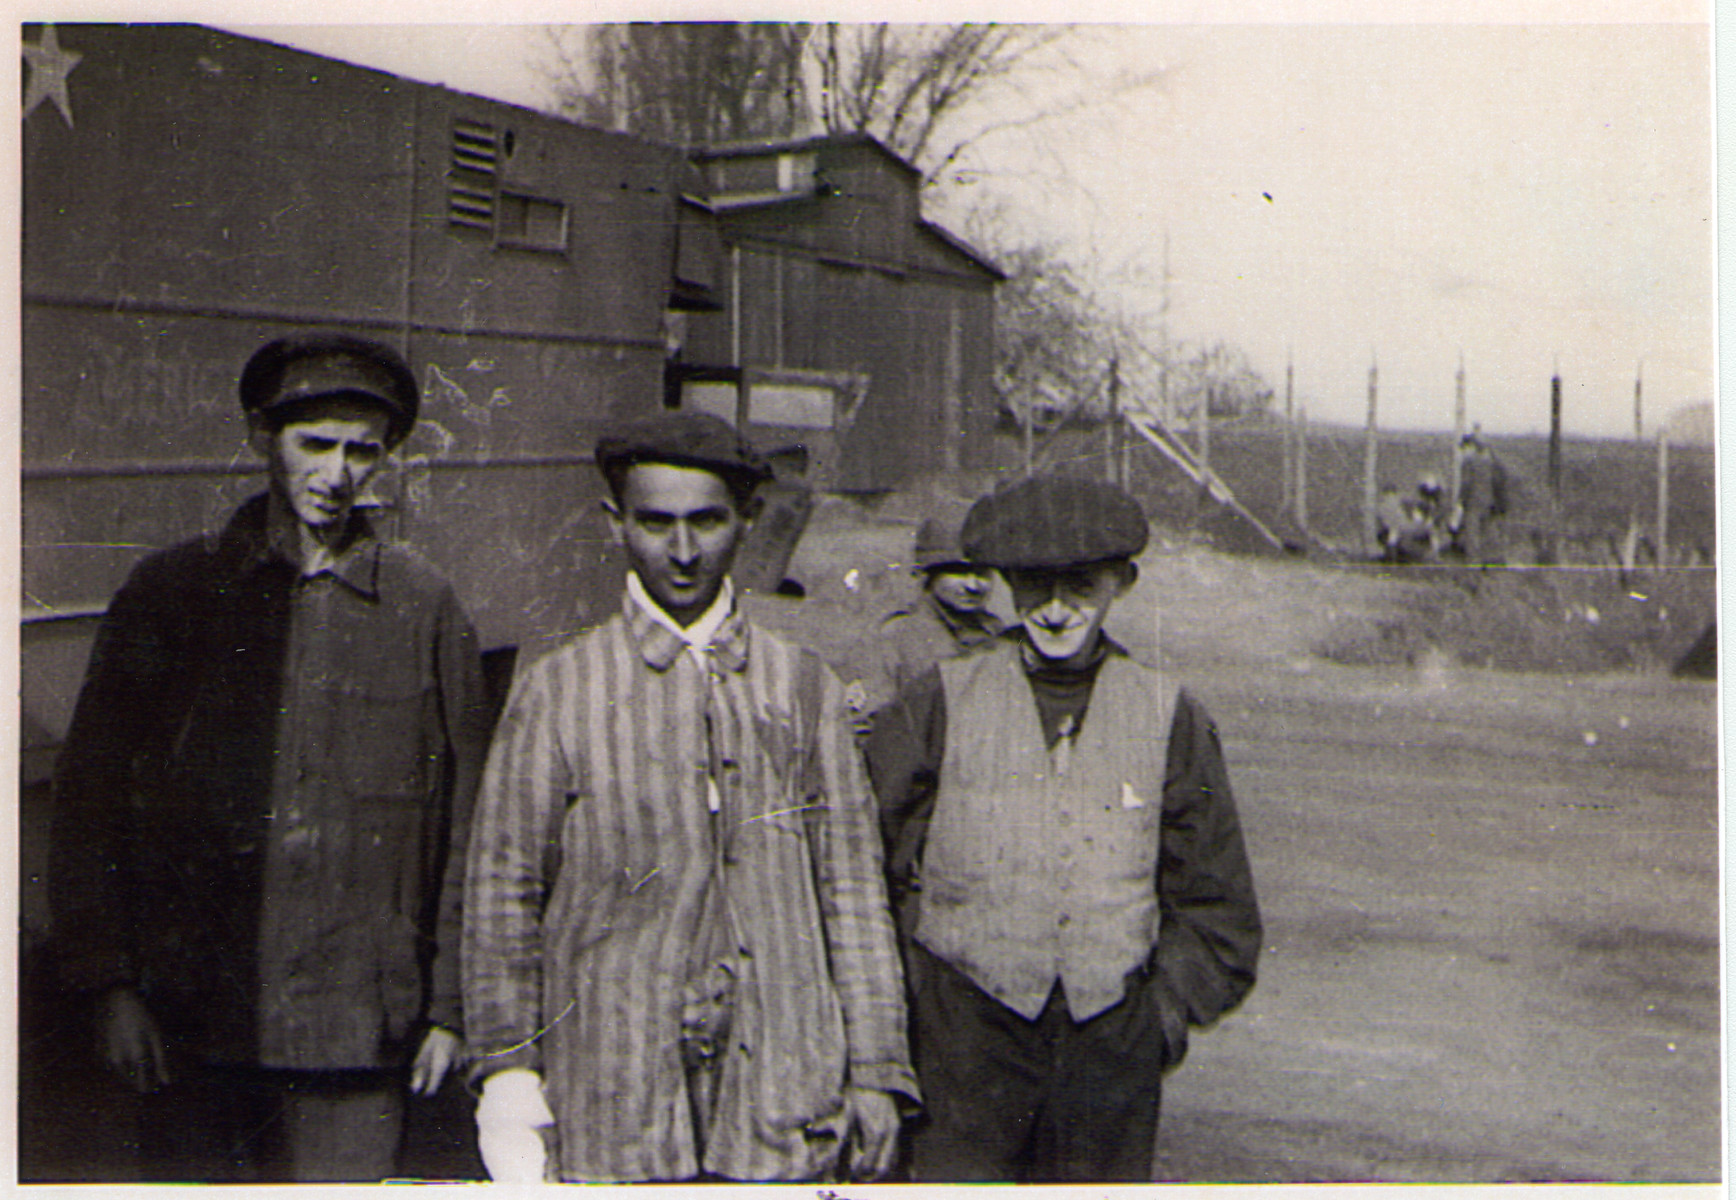 Three survivors of the Hanover-Ahlem concentration camp pose in front of a truck.  Behind them, an American soldier can be seen.